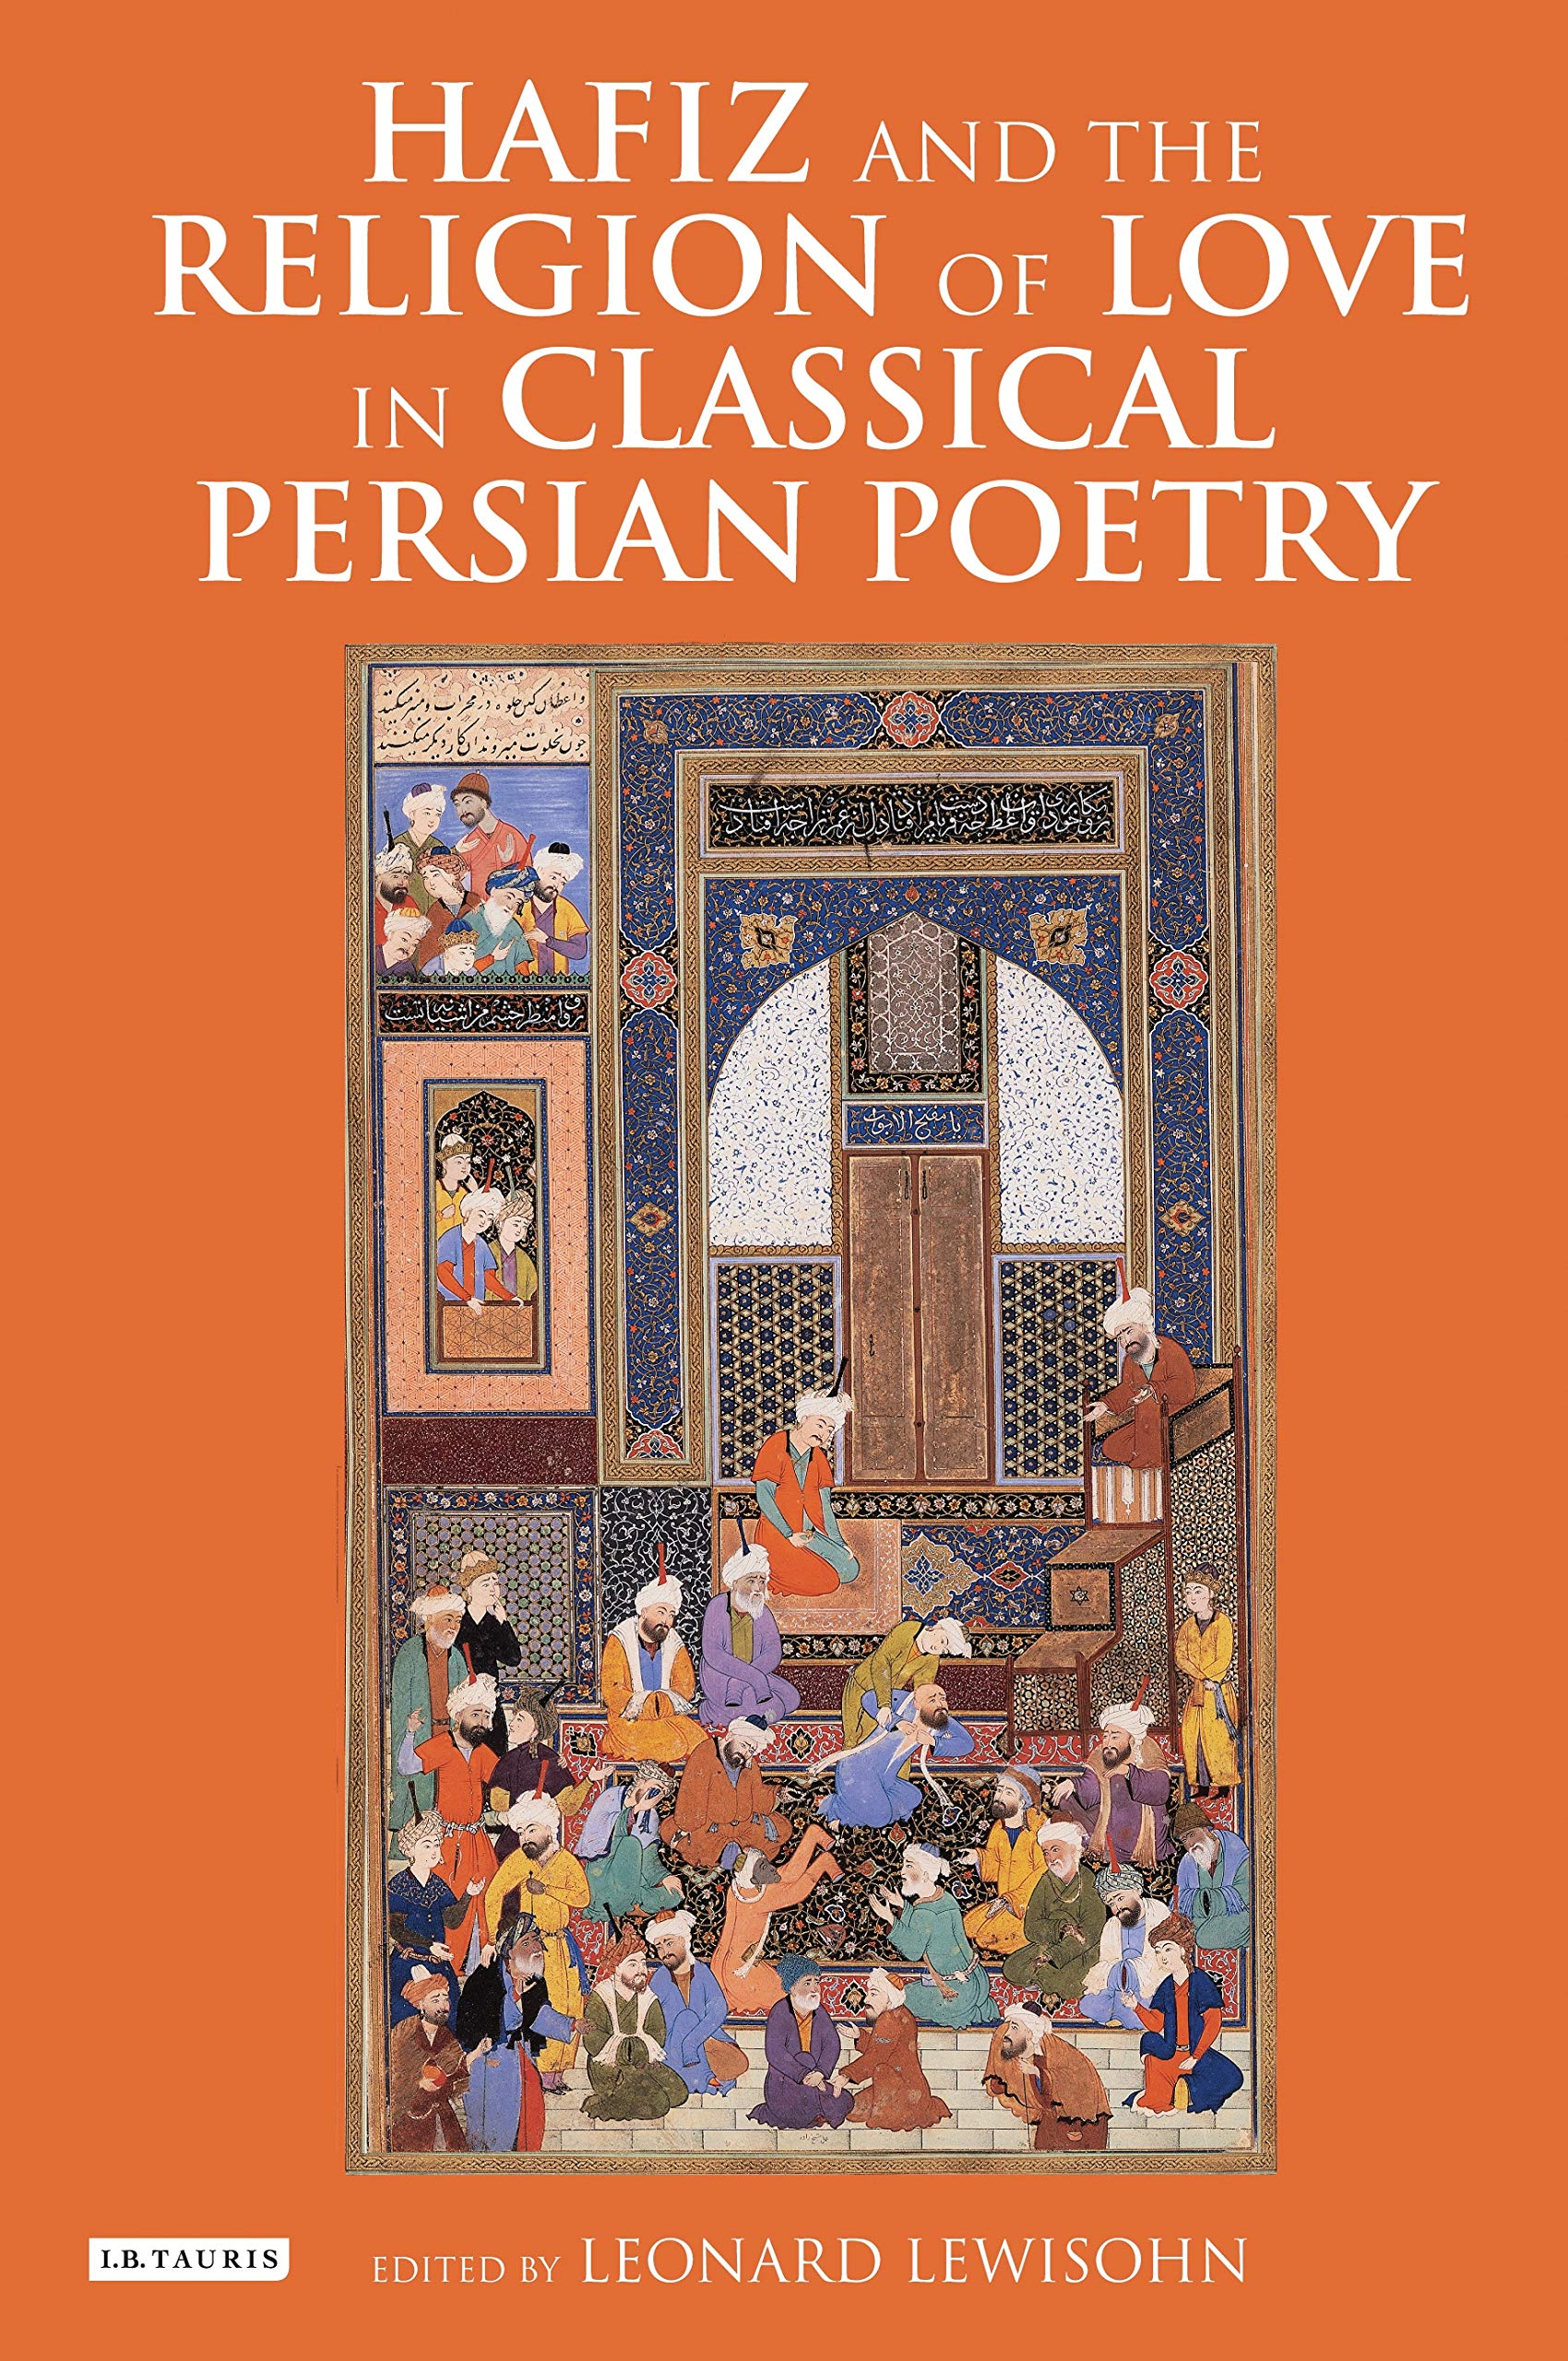 Hafiz and the Religion of Love in Classical Persian